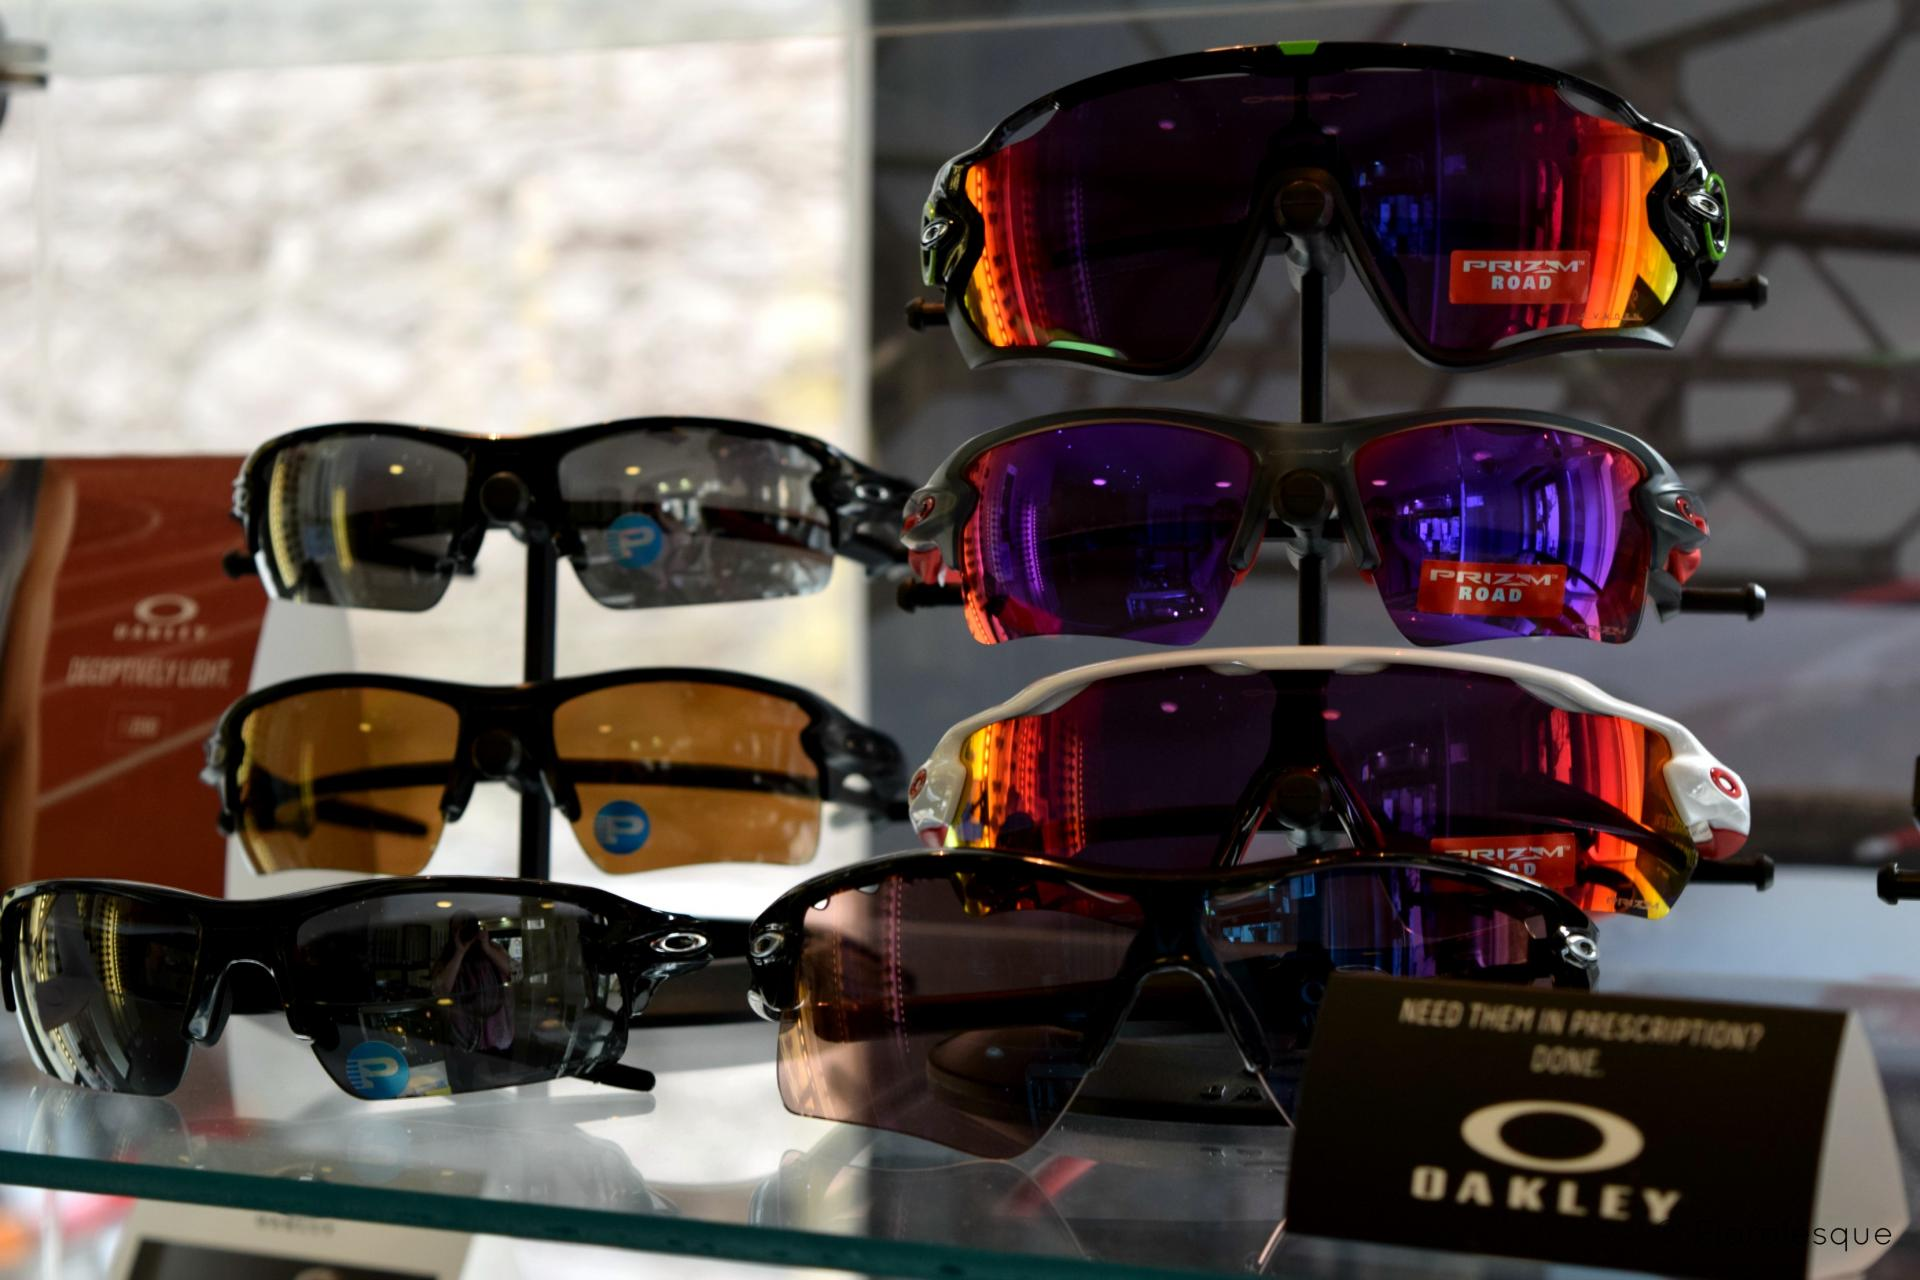 TIME TO GO SUNGLASSES SHOPPING